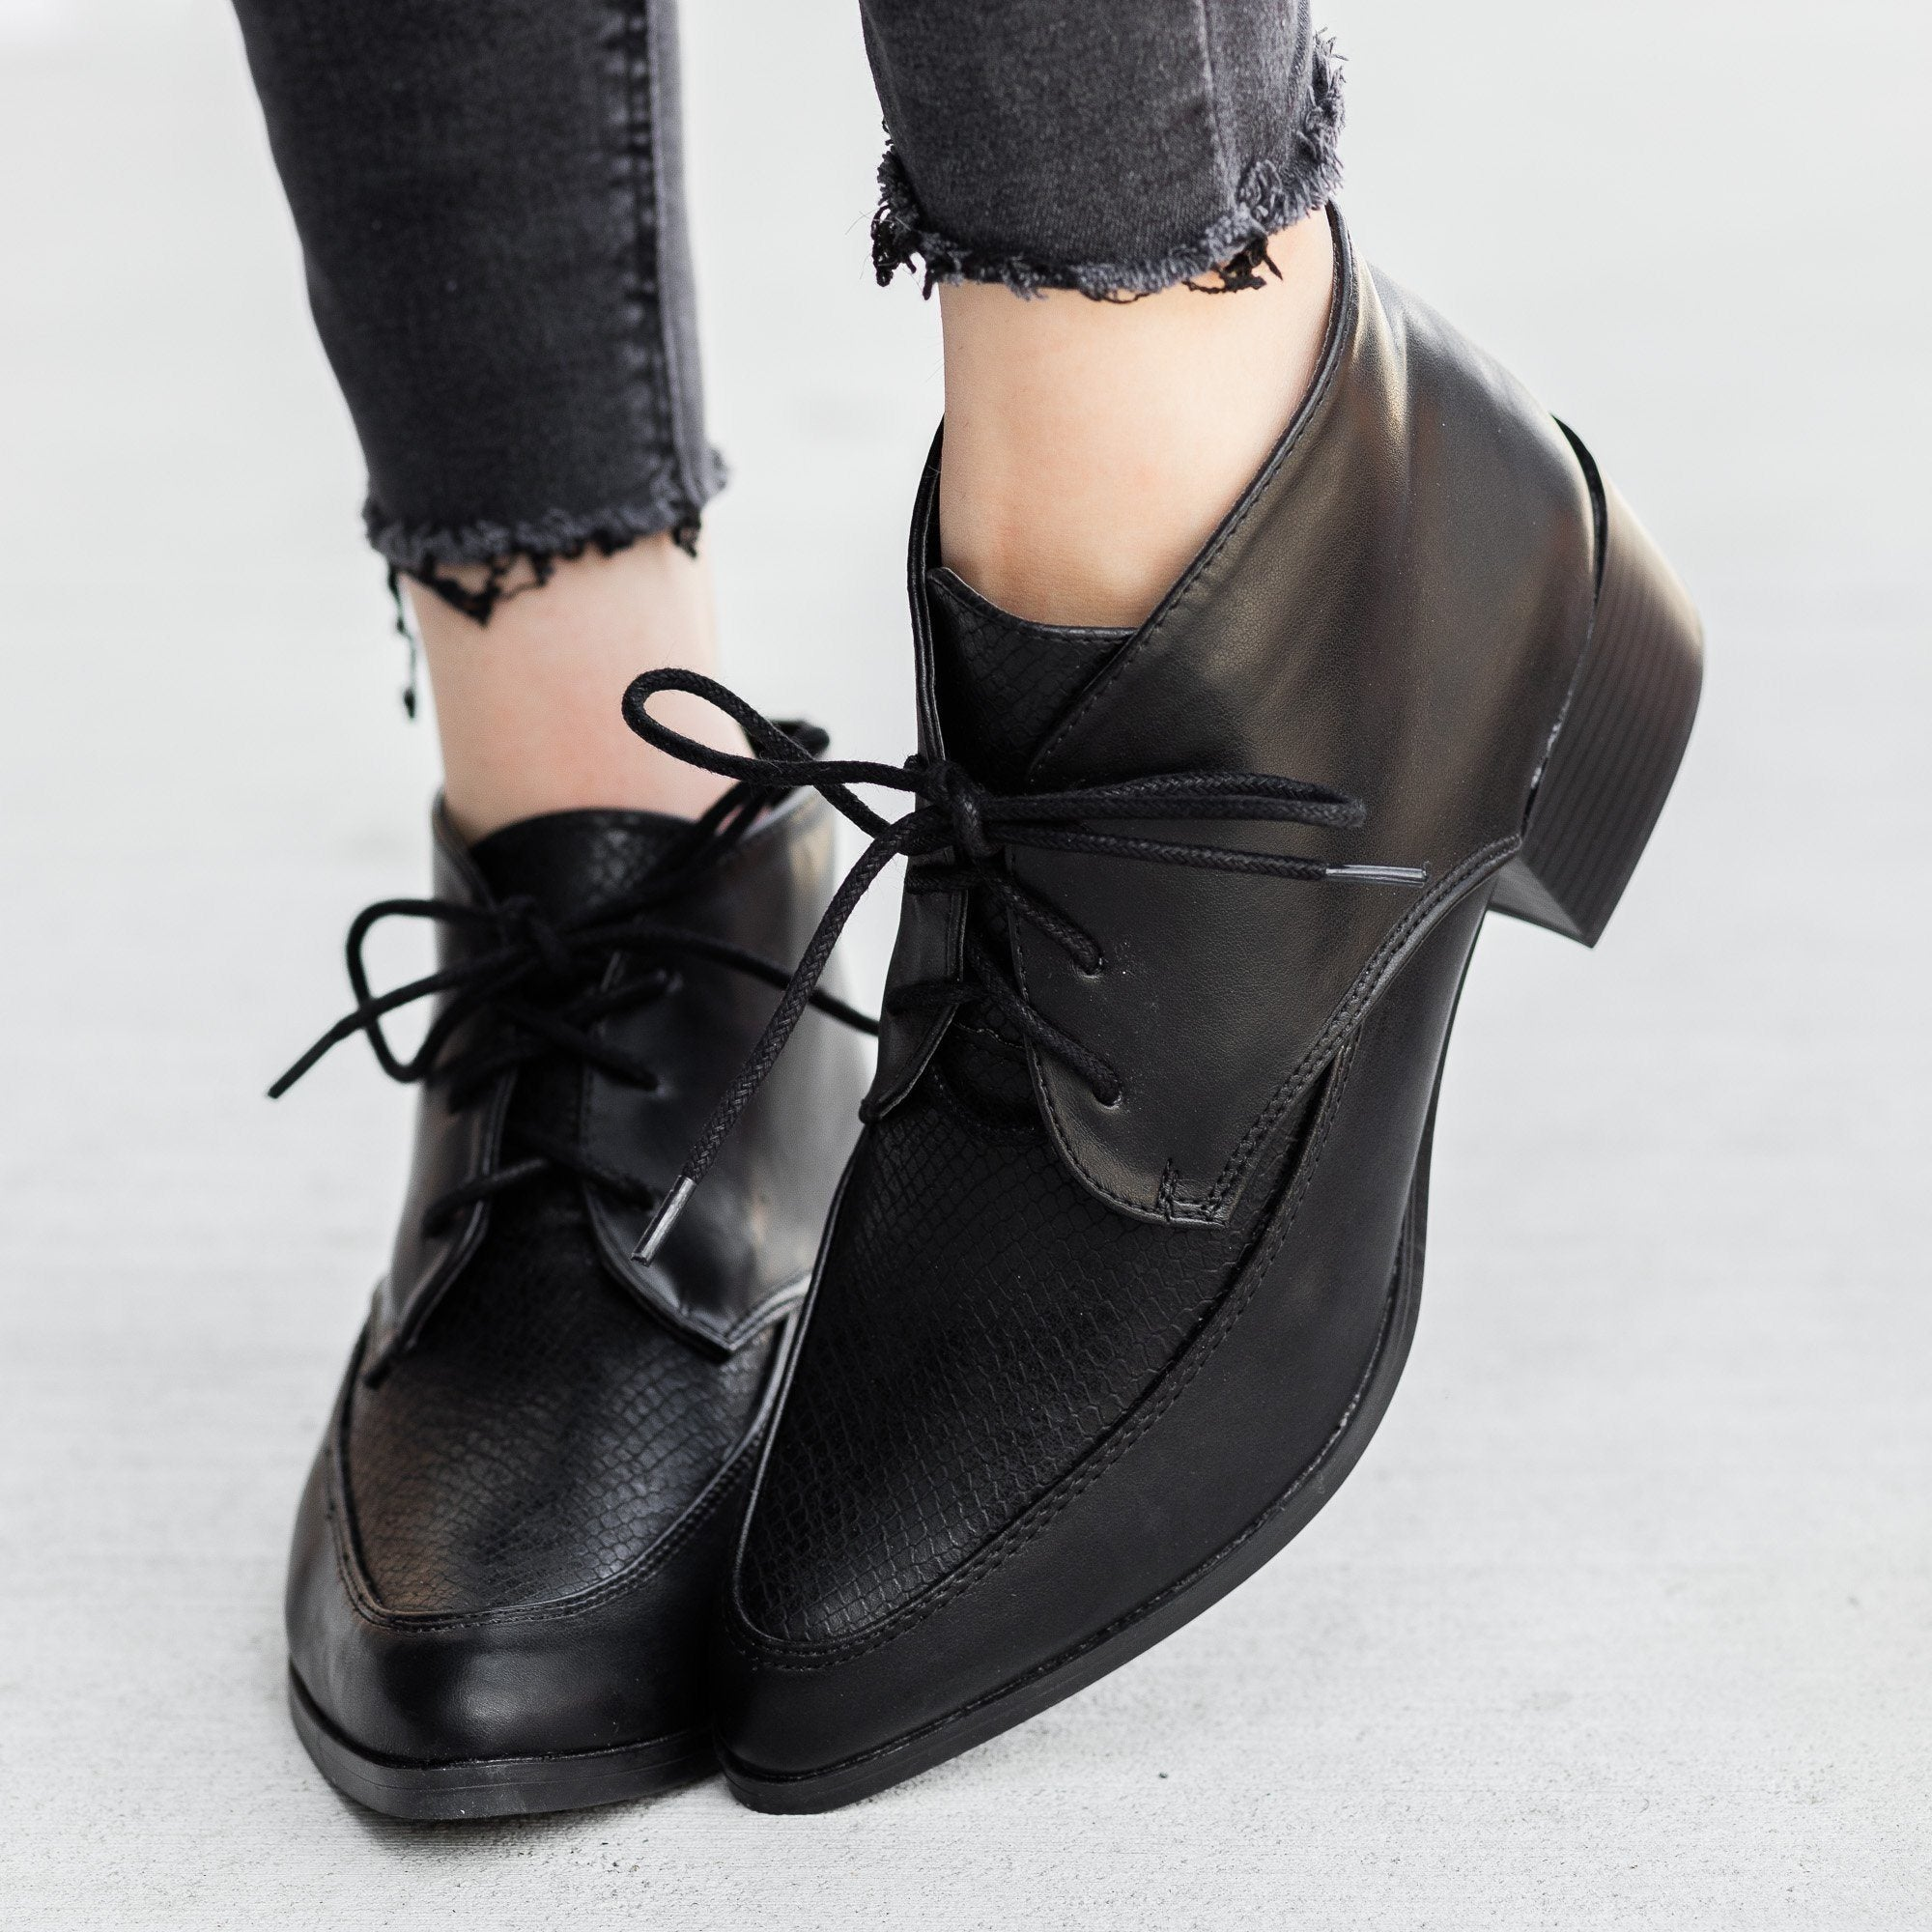 Chic Oxford Booties - Qupid Shoes Wasco